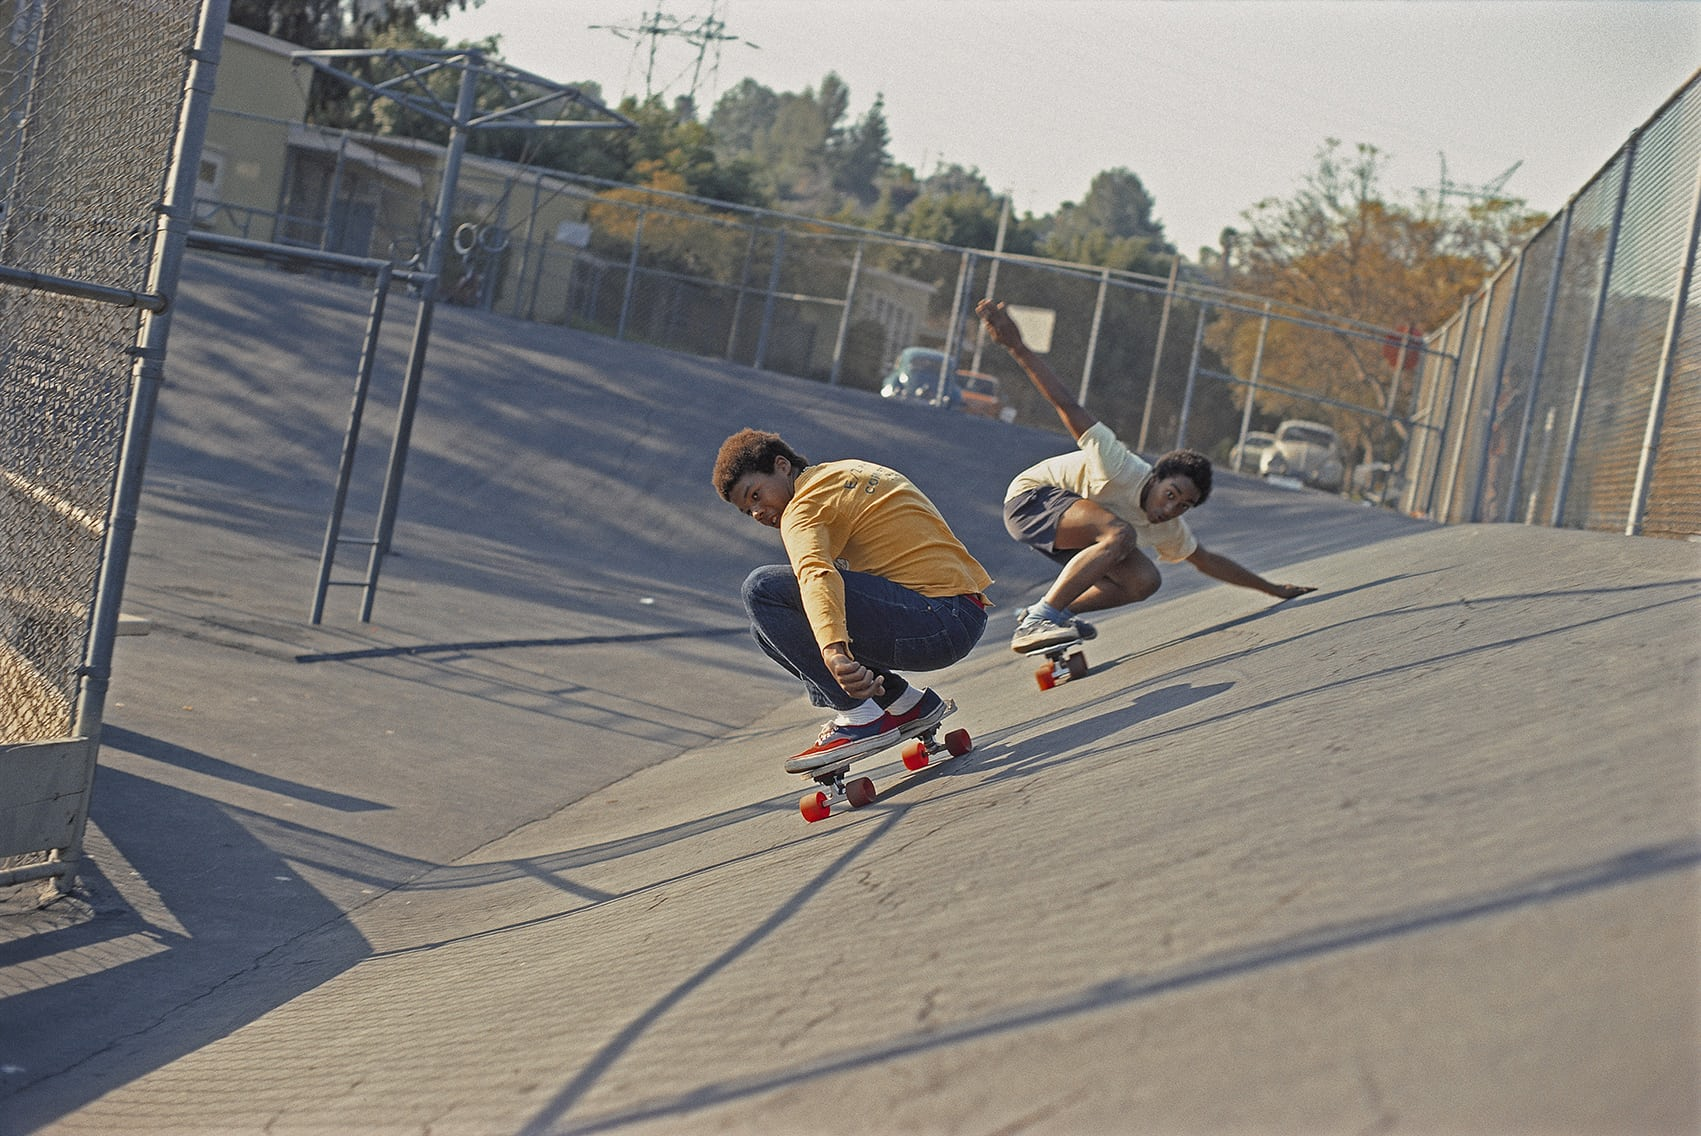 Face-plants and vert ramping: the evolution of skateboarding photography